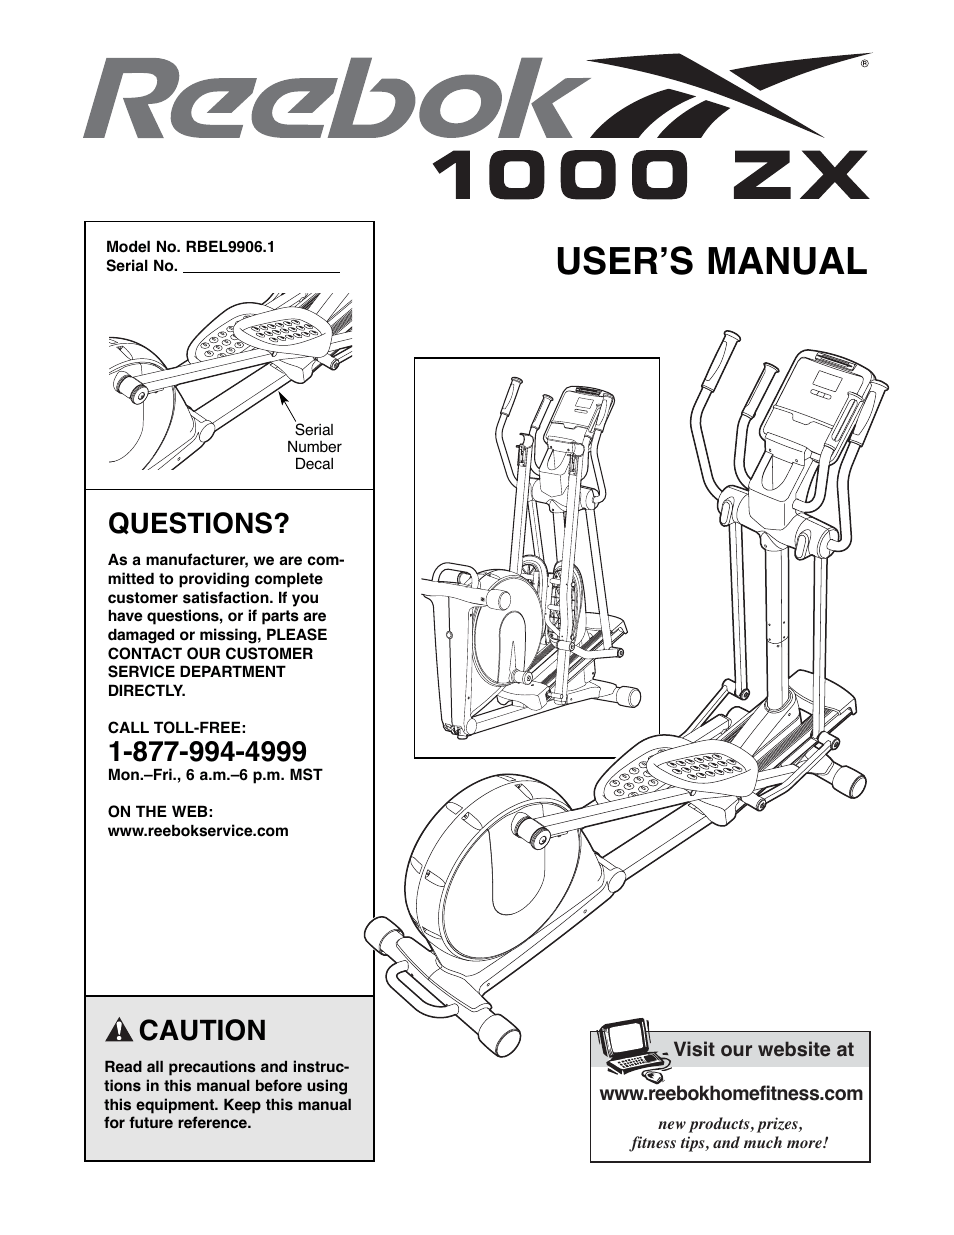 Reebok Fitness 1000 ZX elliptical exerciser RBEL9906.1